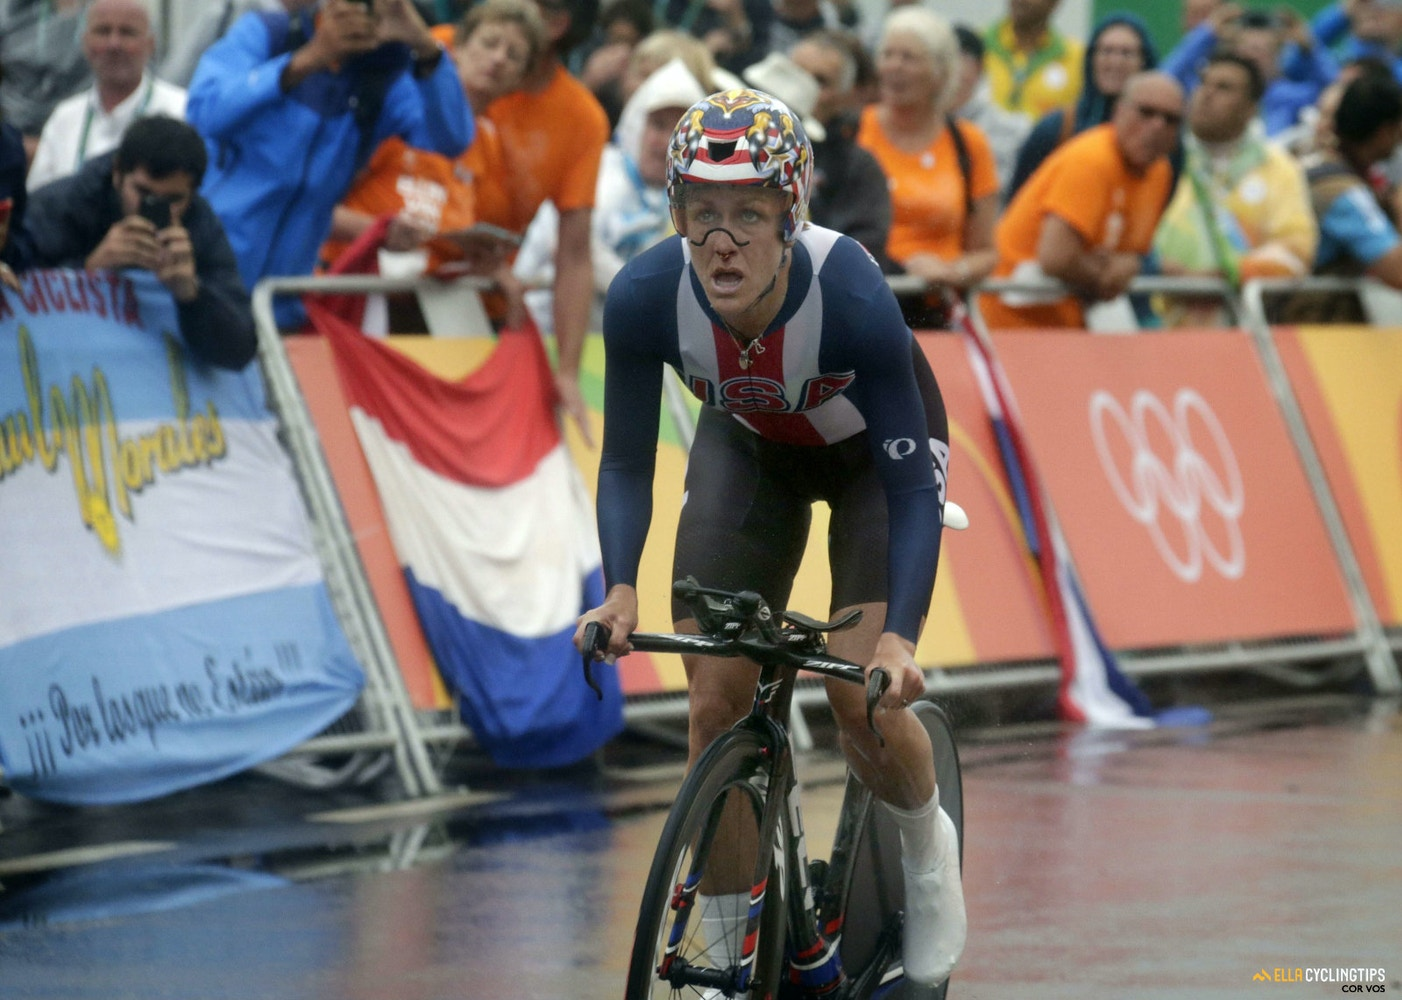 Experience pays off in gold as Kristin Armstrong wins rainy Olympic time trial